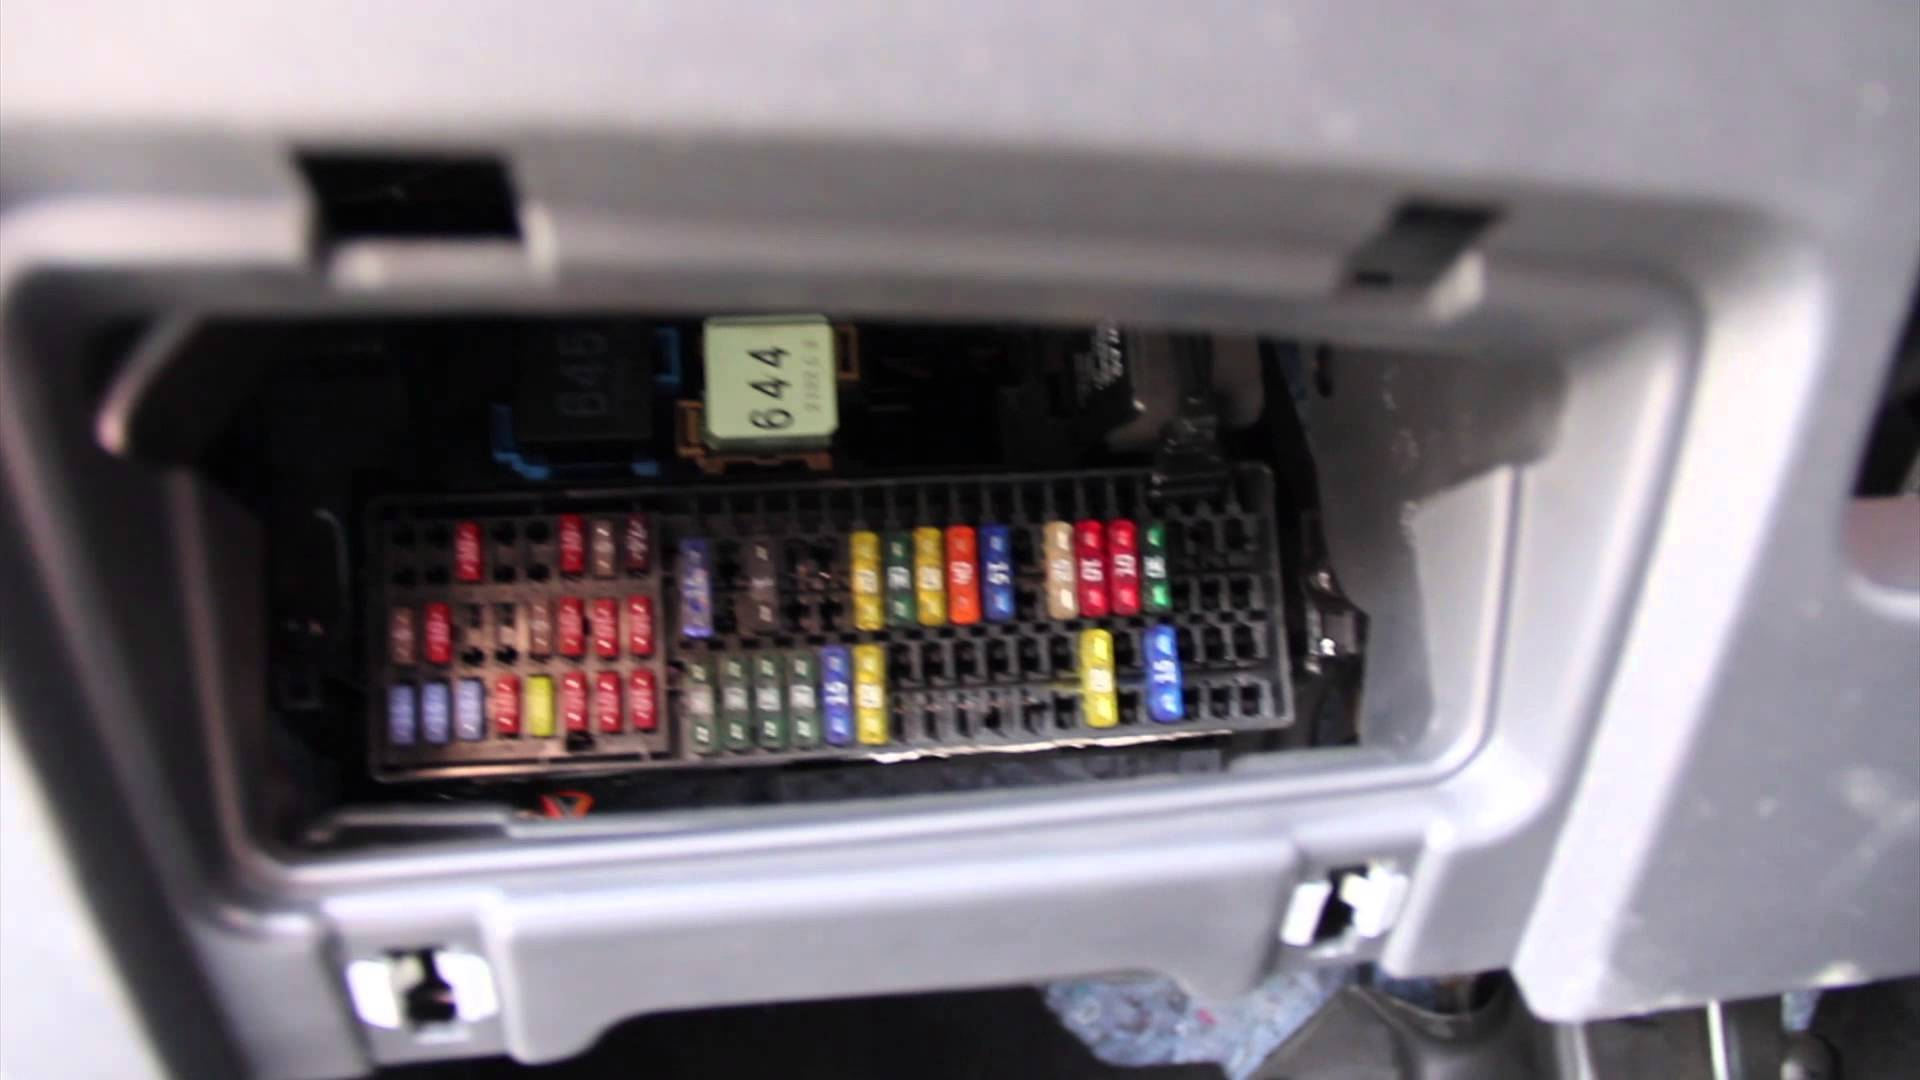 2012 vw jetta fuse box diagram cUryfXQ 2012 vw jetta fuse box diagram image details